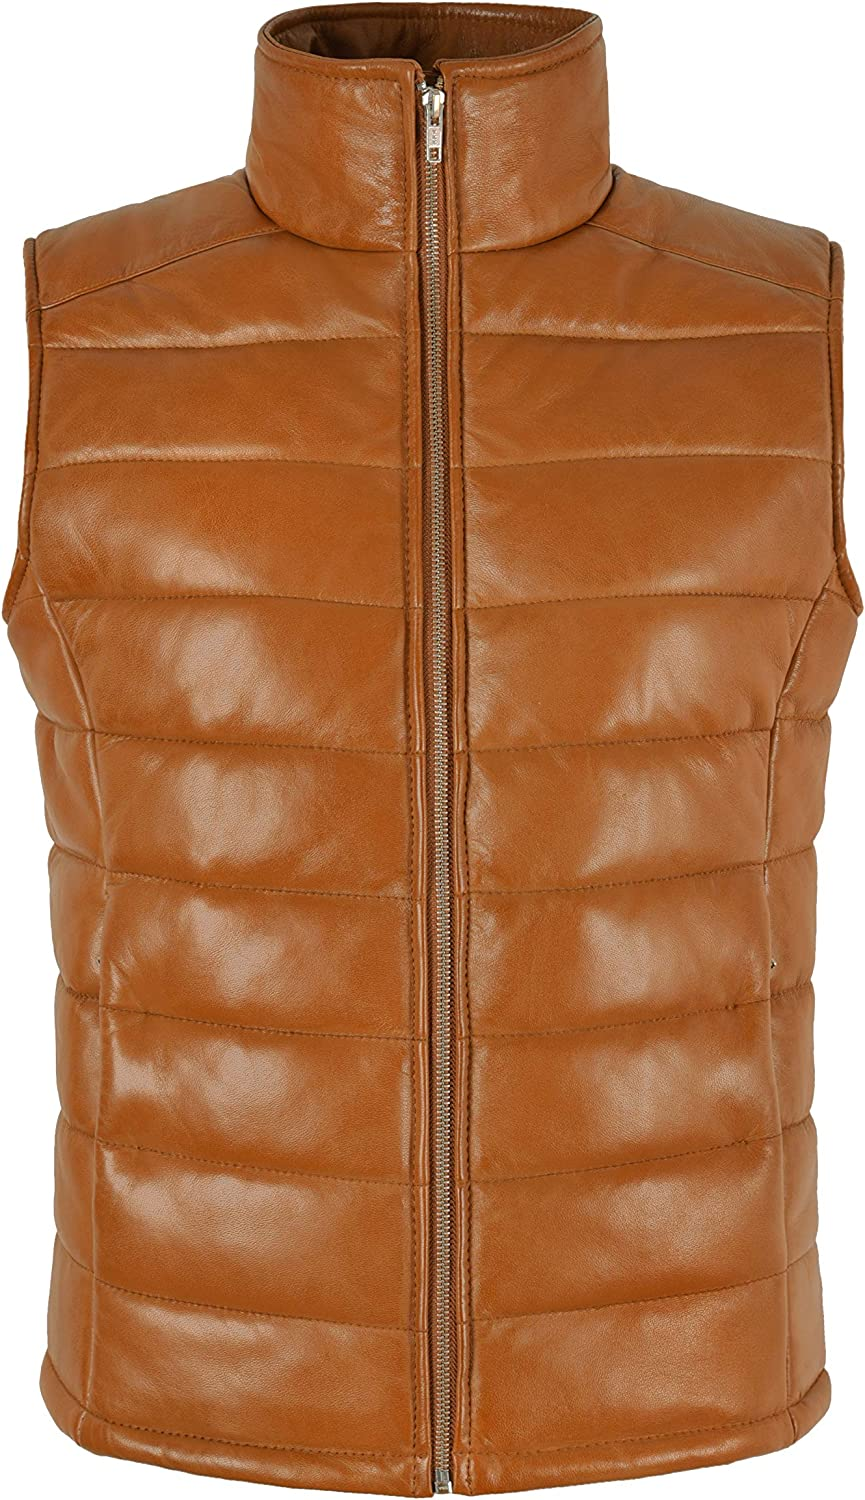 Womens Padded Vest Puffer Bodywarmer Real Leather Sleeveless Quilted Waistcoat 5630